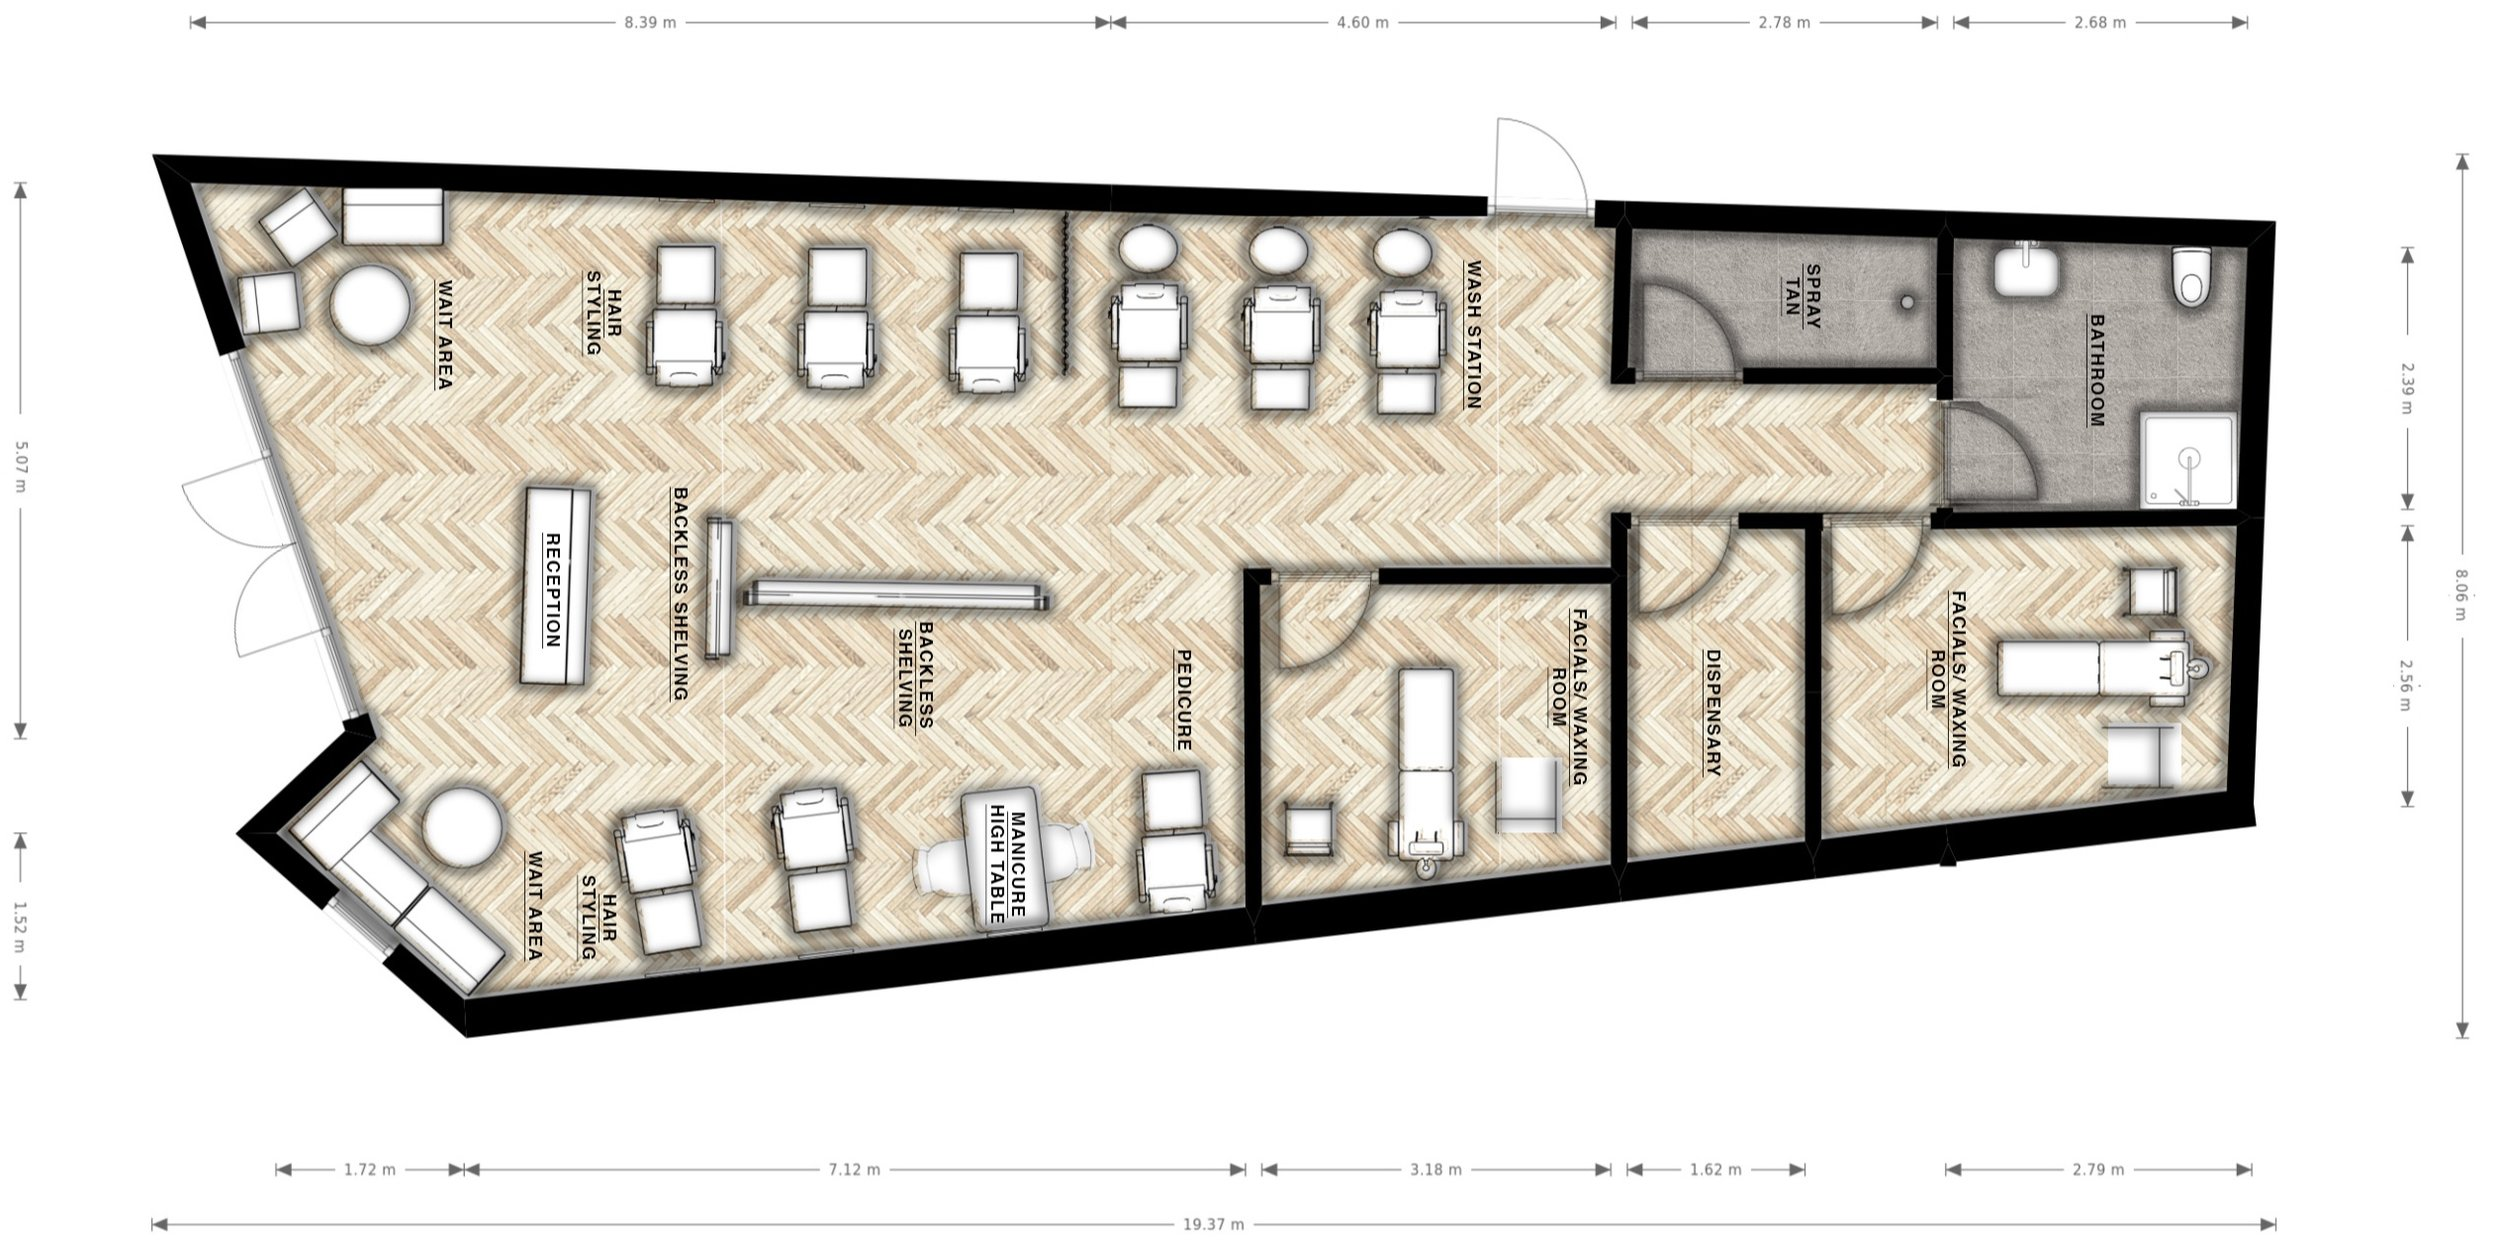 floorplanshaded.jpg